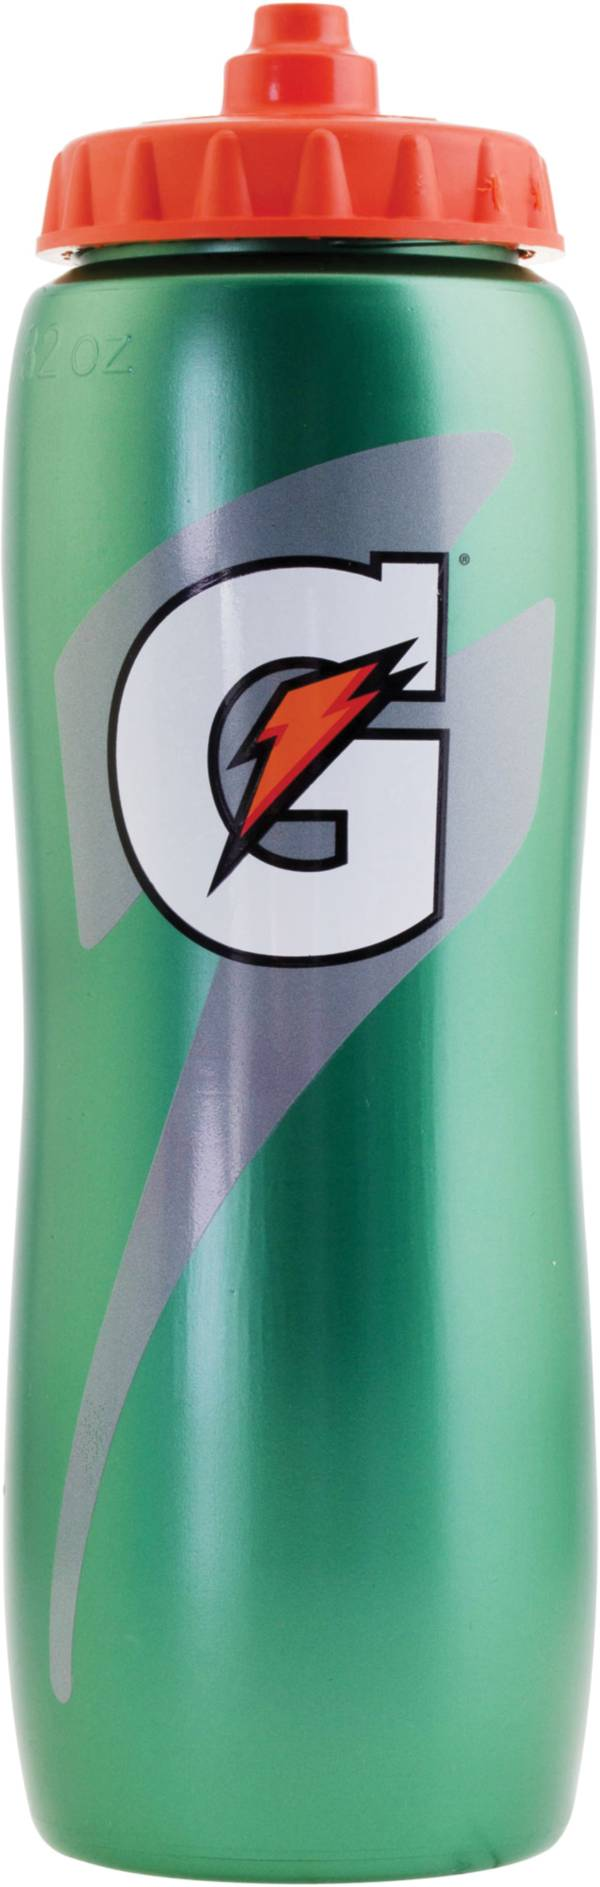 Gatorade Contour Squeeze Bottle 32 oz. product image